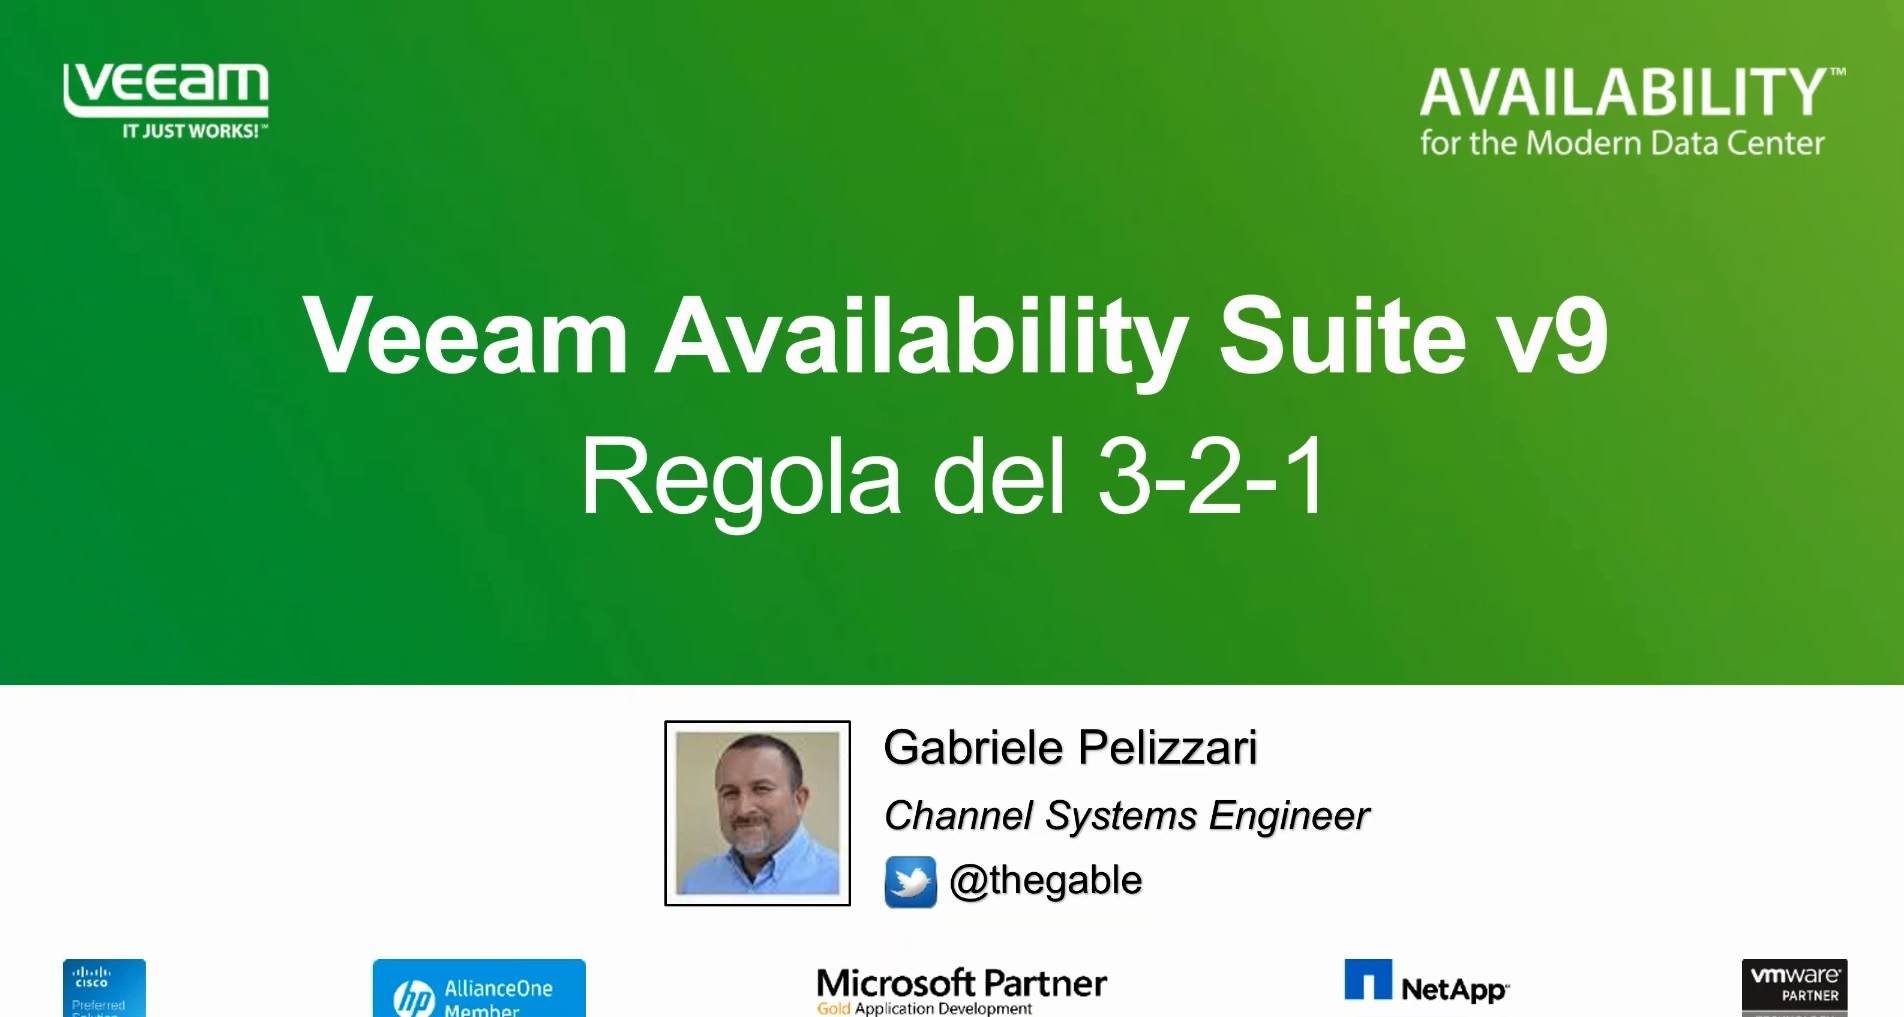 La Regola del 3-2-1: Uno dei segreti dell'Availability con Veeam